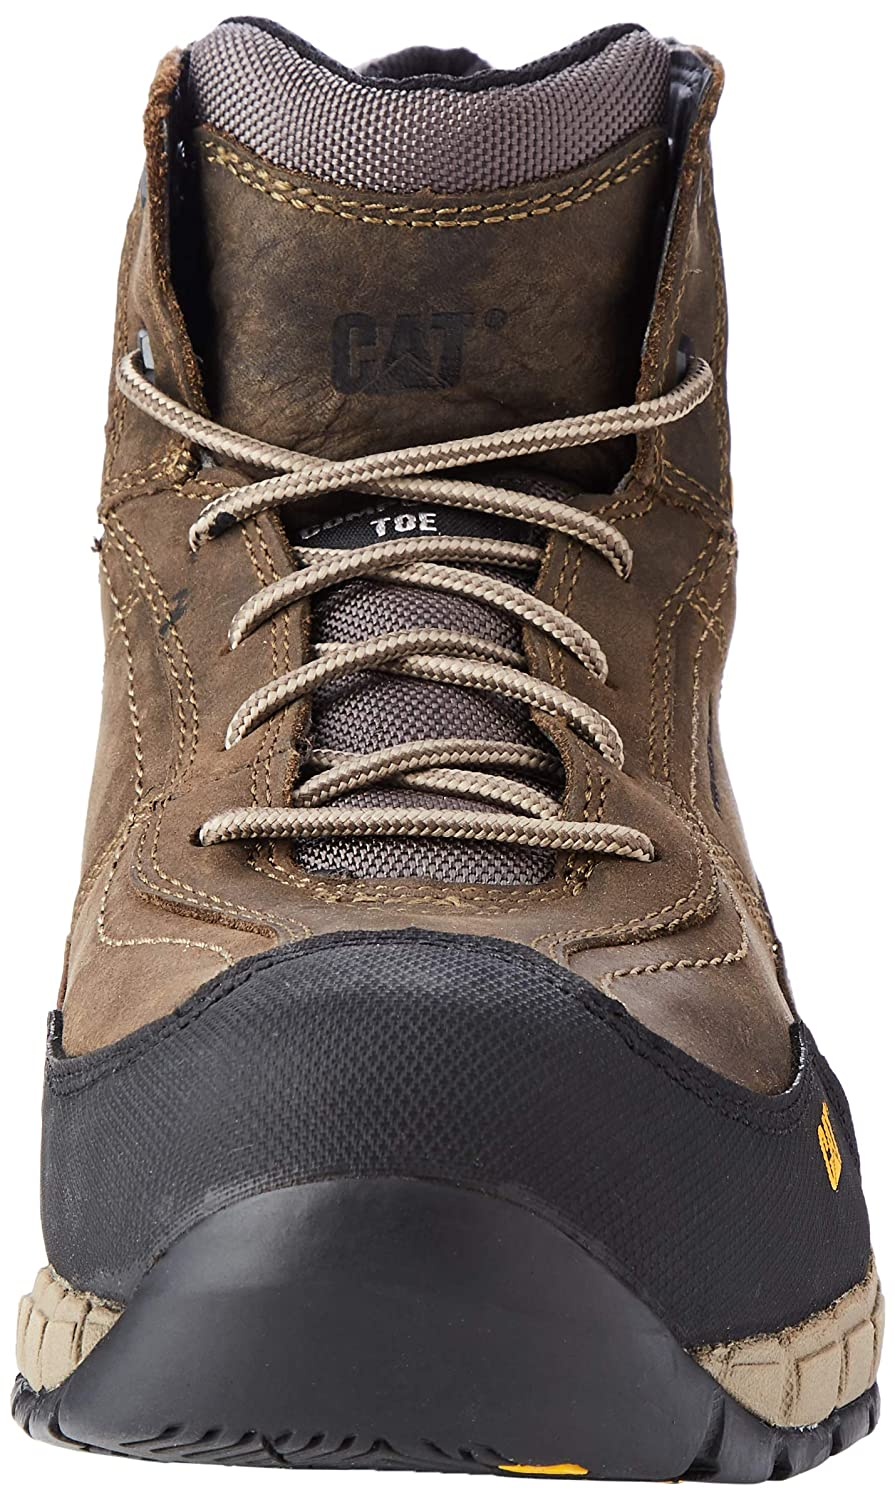 Botas de construcci/ón para Hombre Cat Footwear Streamline Mid Leather CT S1p HRO SRC